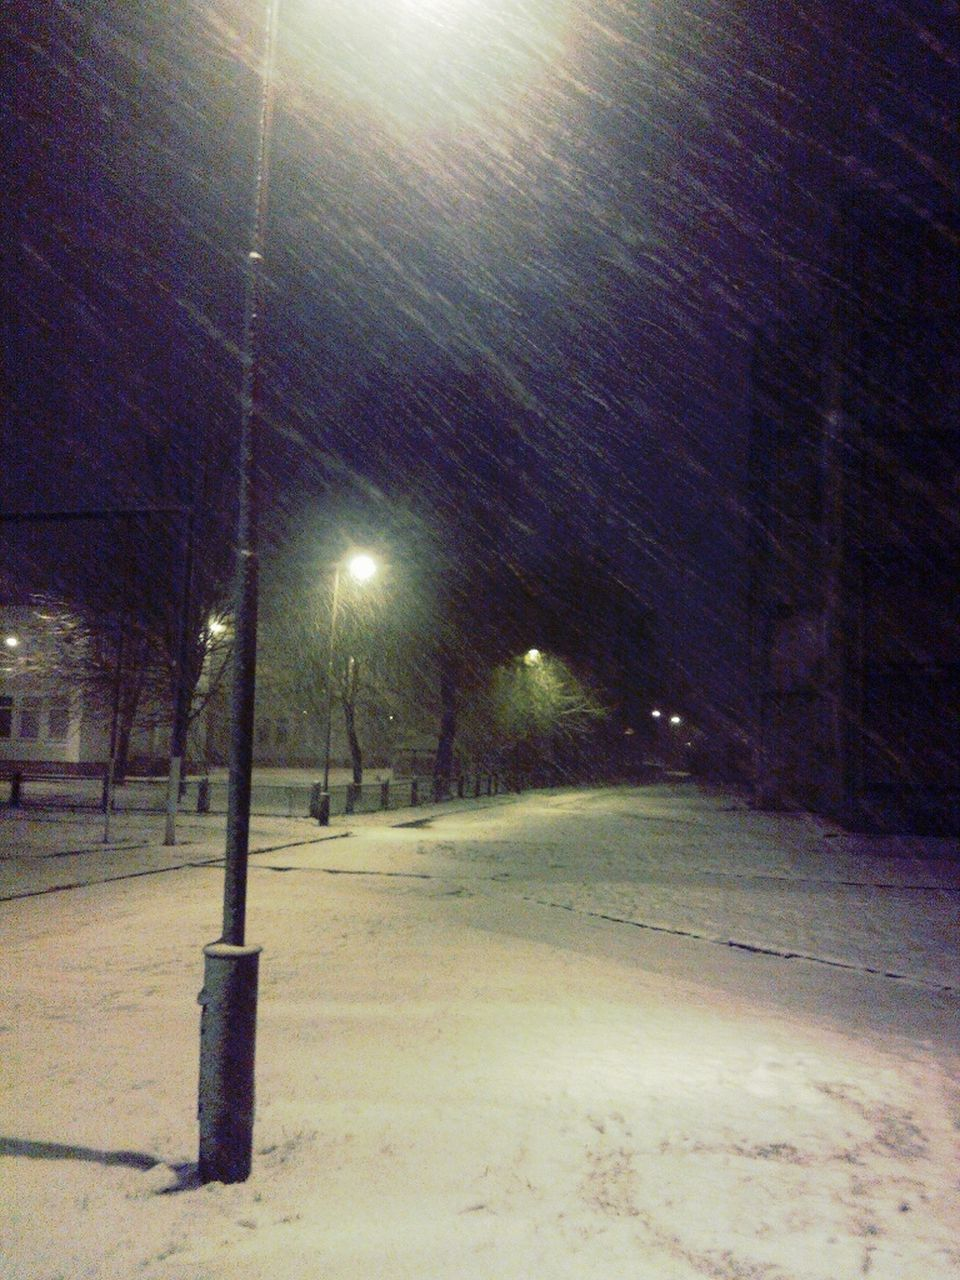 night, snow, illuminated, cold temperature, winter, street light, weather, outdoors, no people, nature, snowing, tree, sky